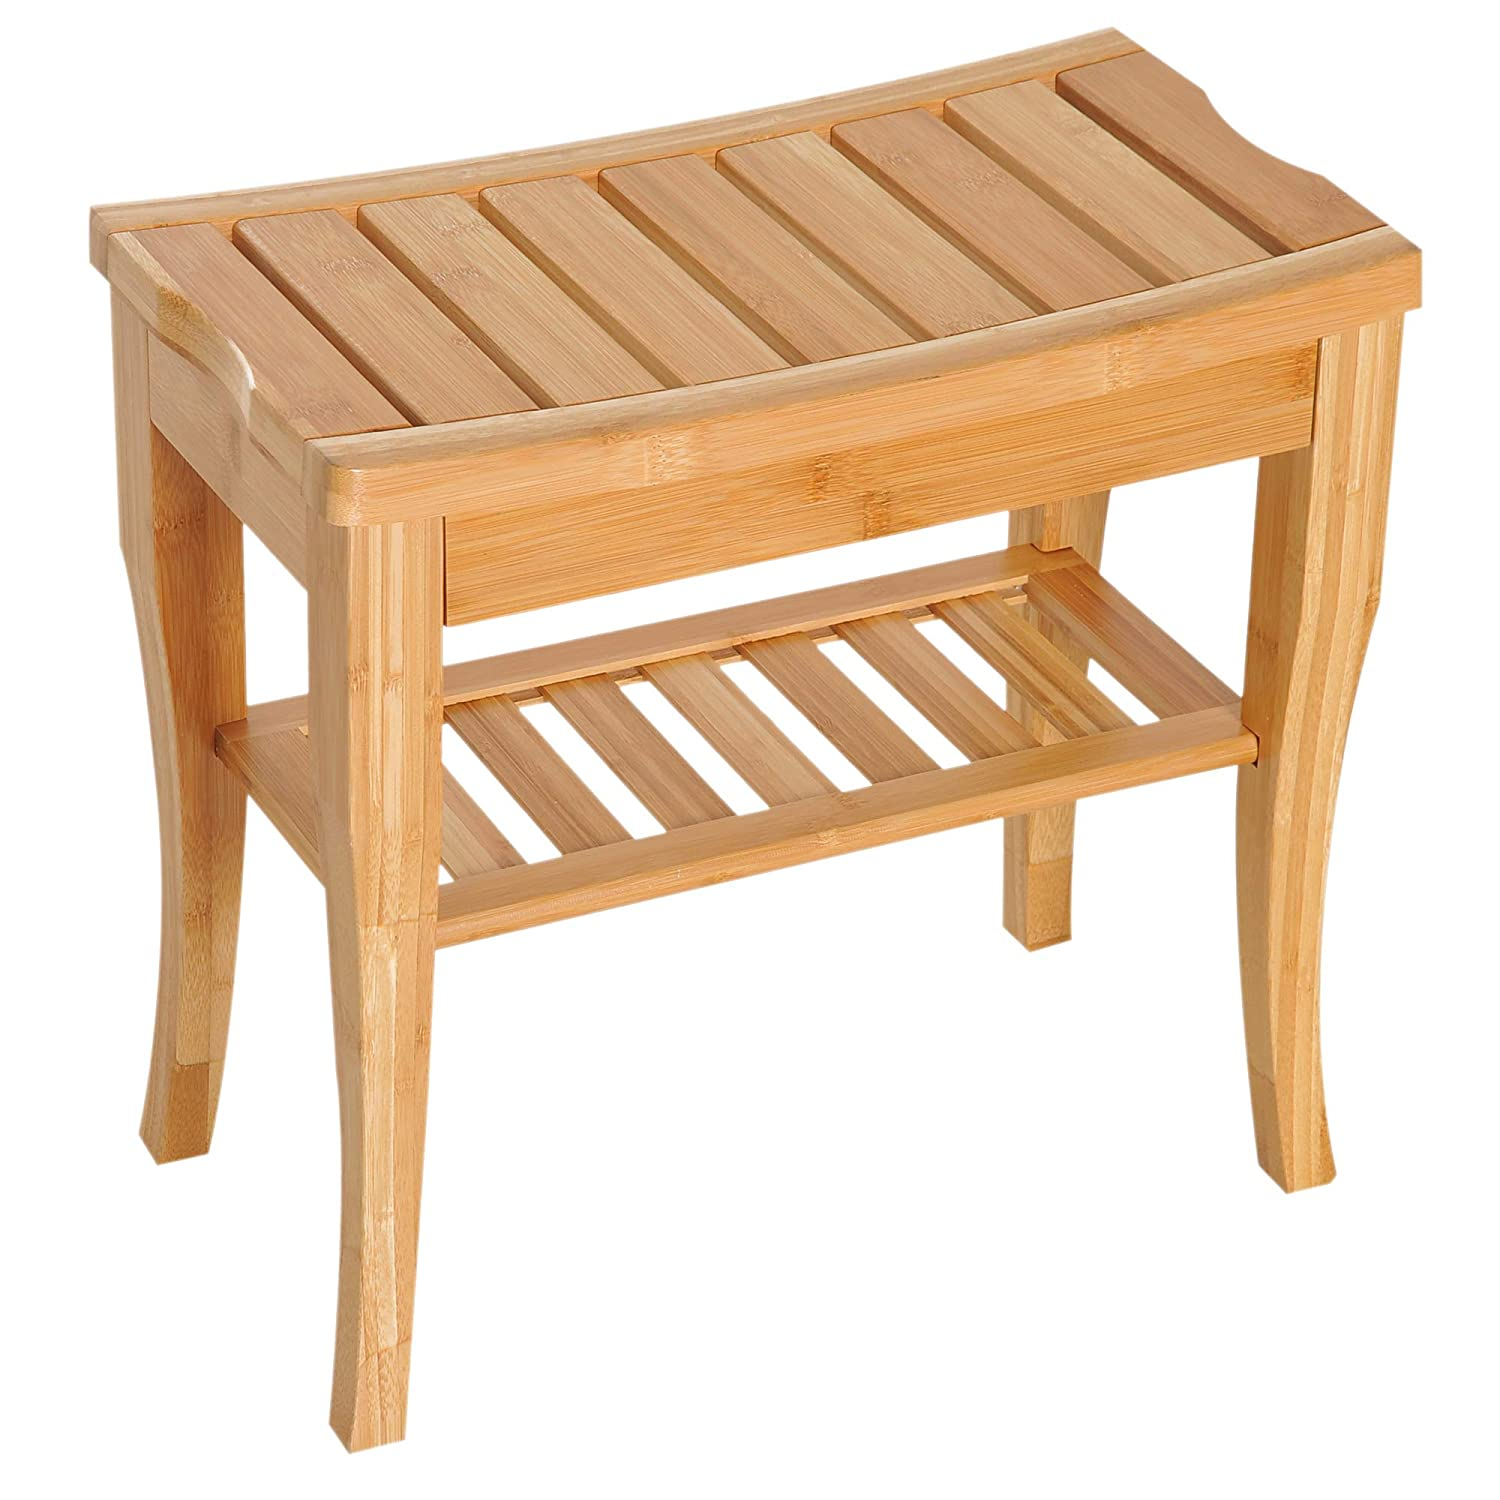 "HomCom 20"" Long Bamboo Wood Shower Bench Seat with Lower Storage Shelf"